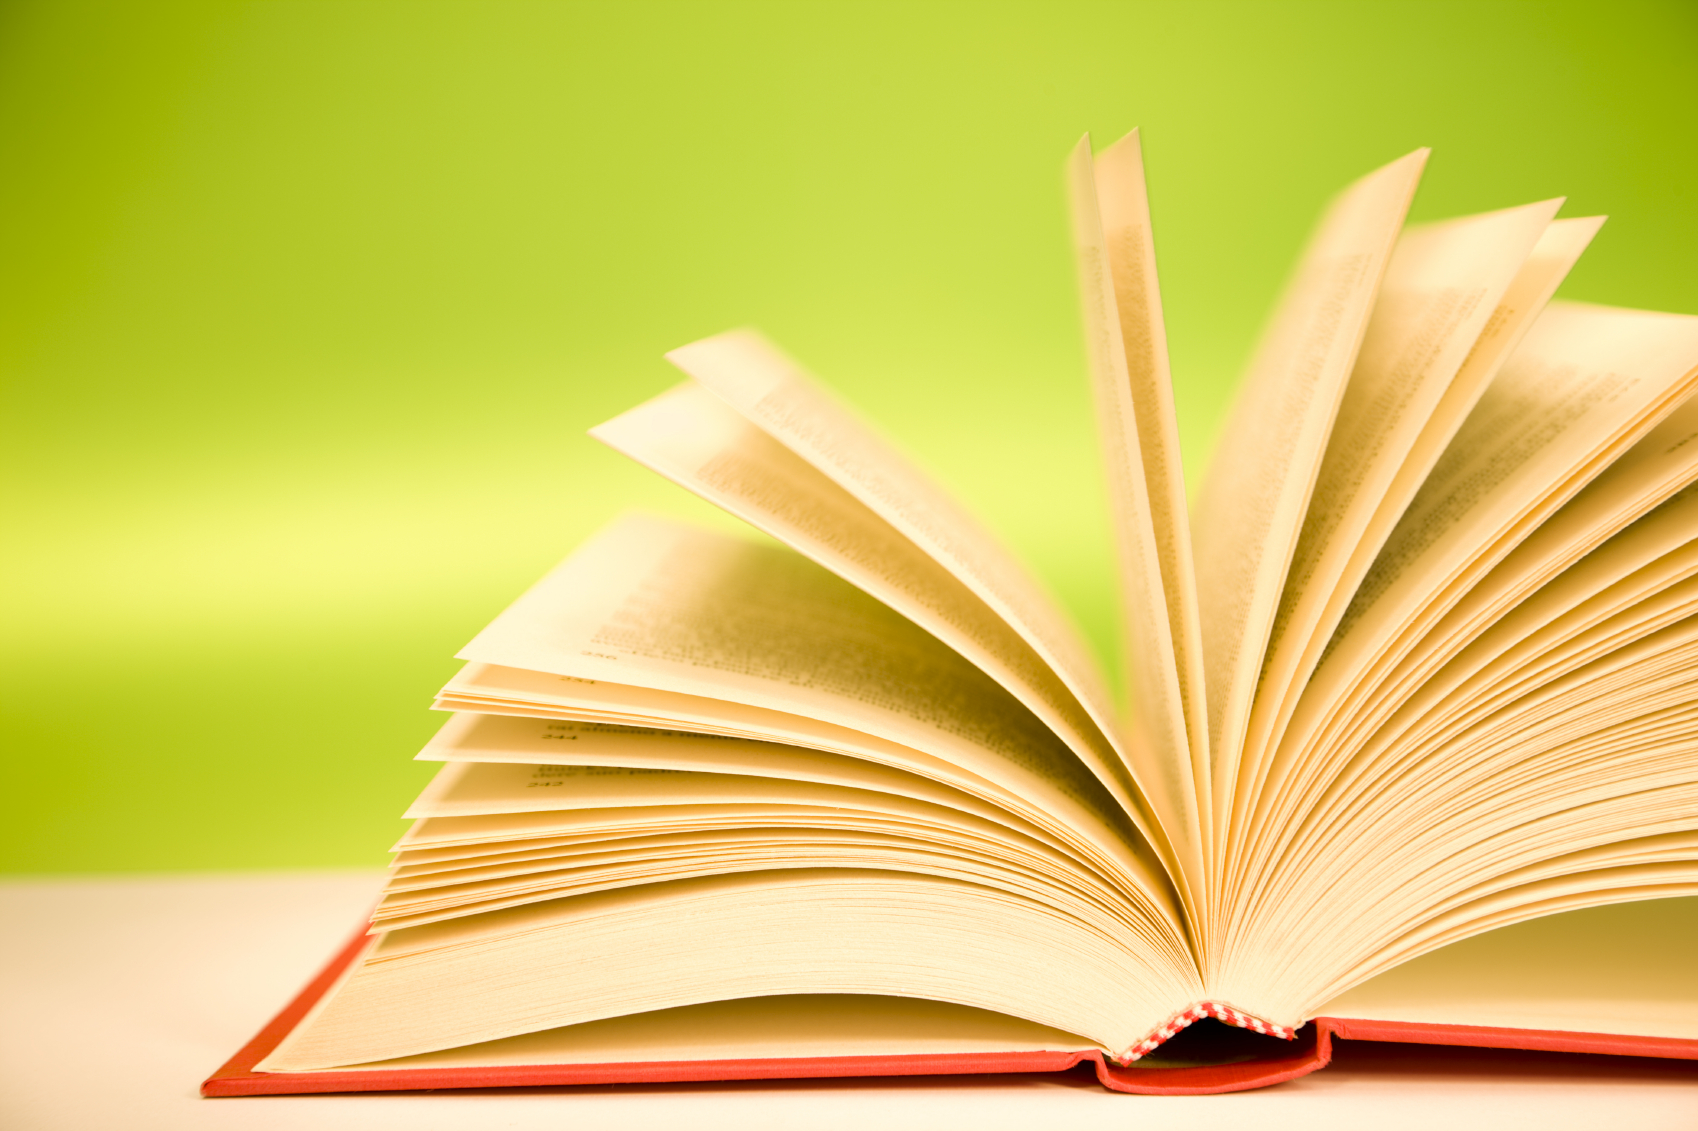 Images with books graphic freeuse download Books | GRAVITAS MAGAZINE graphic freeuse download